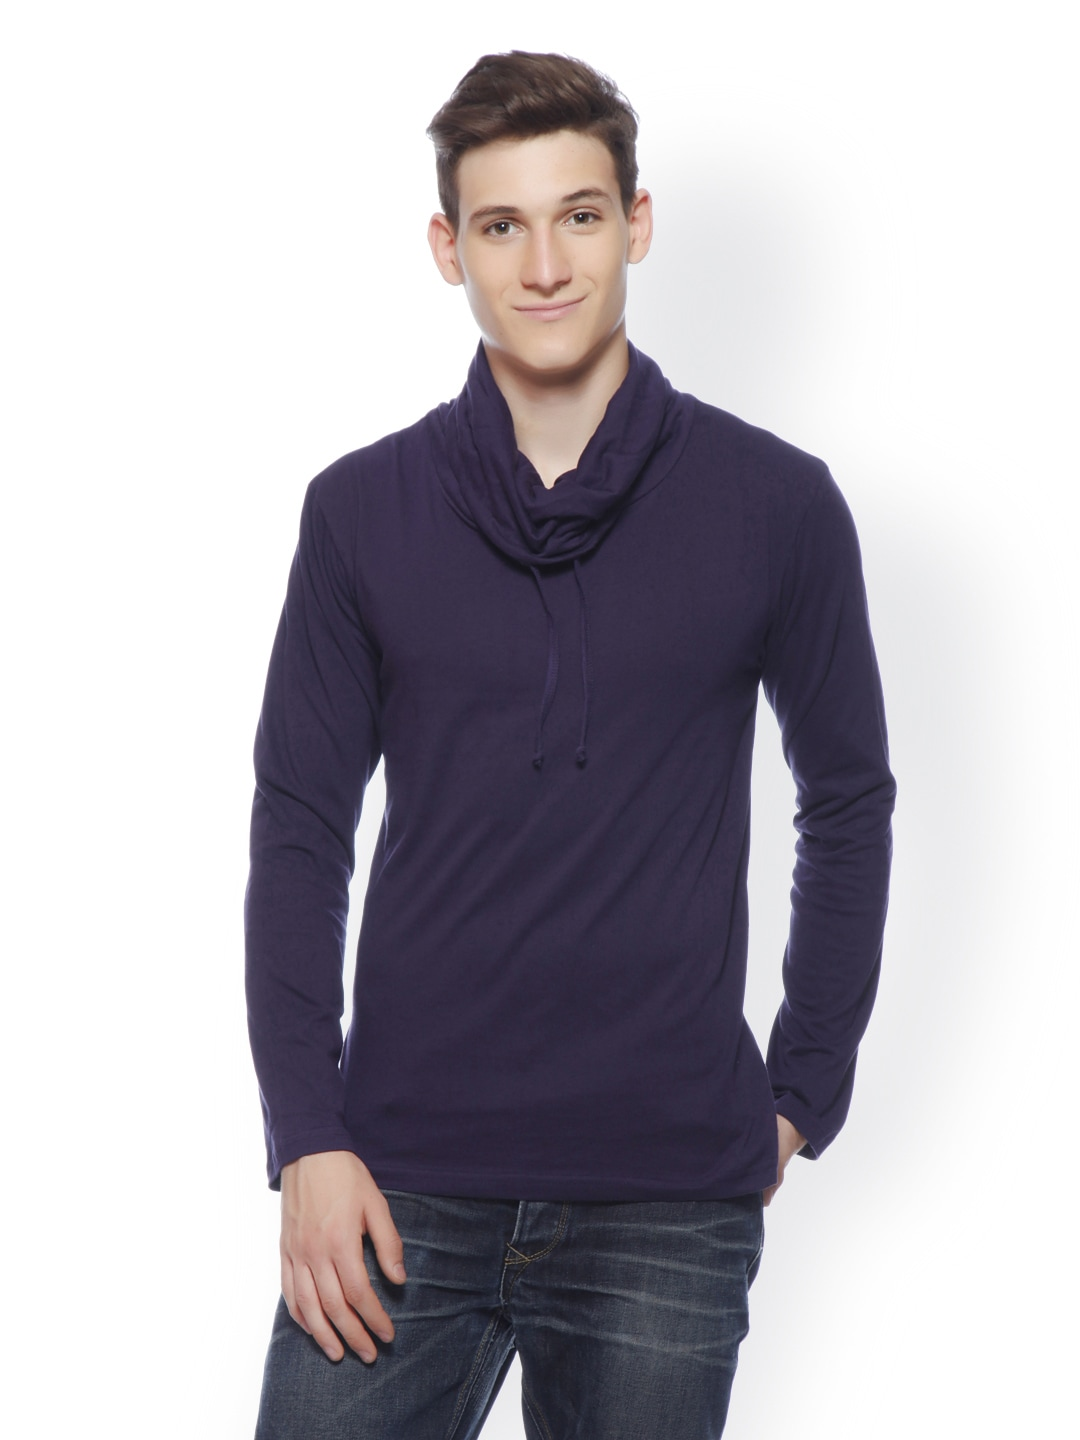 416467a499f9a2 Cowl Neck Men - Buy Cowl Neck Men online in India